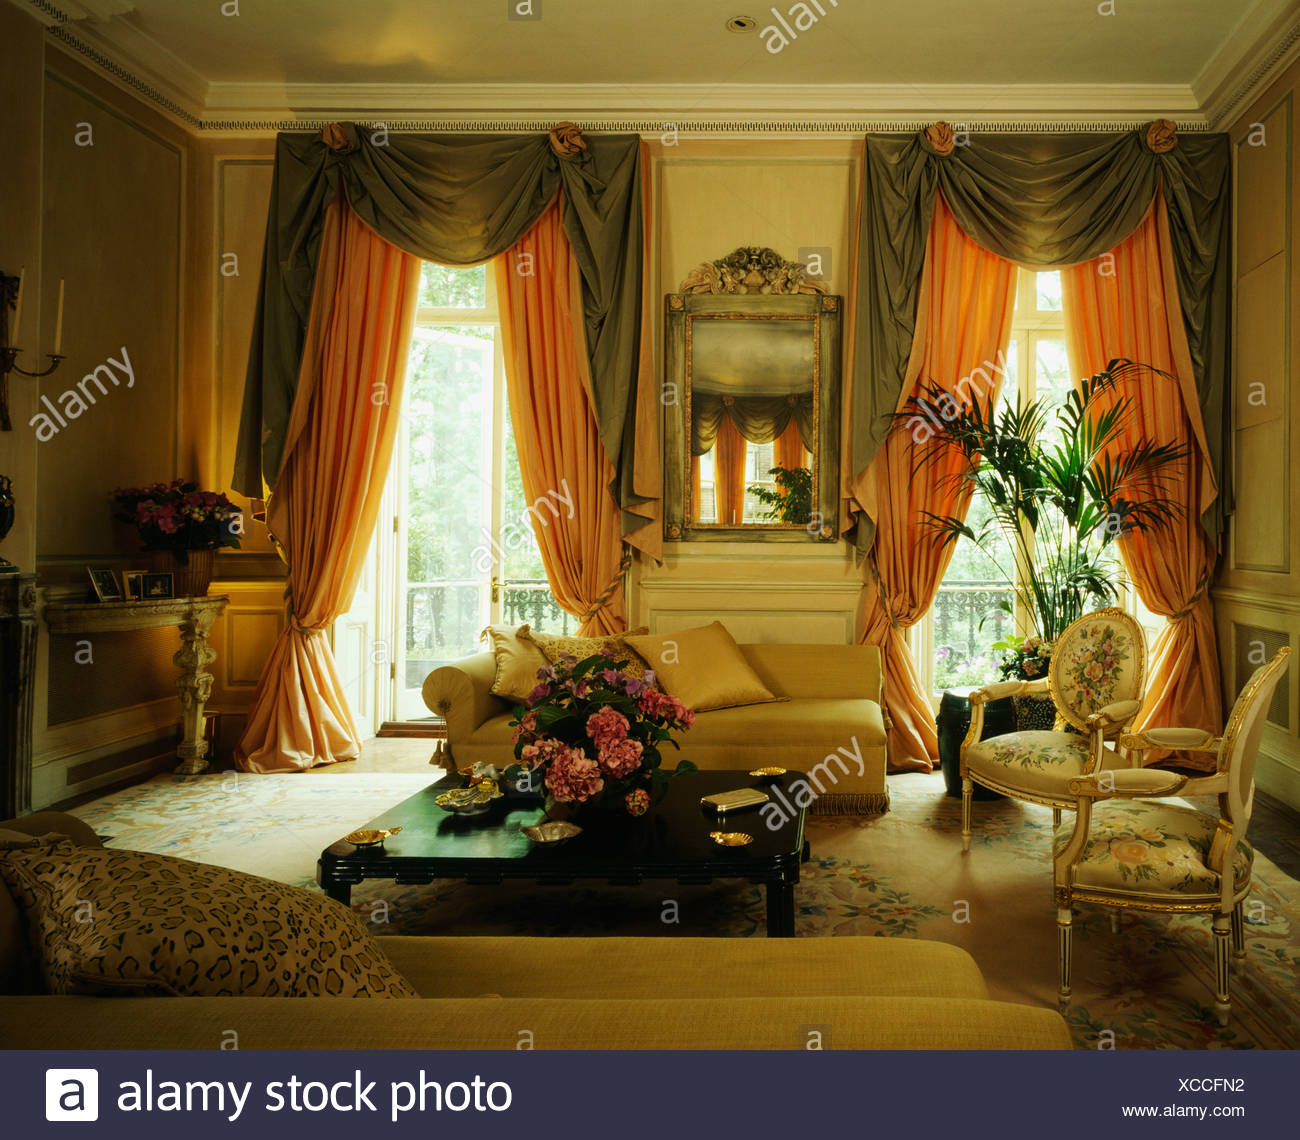 Peach Silk Drapes With Brown Tails And Swags At Tall Windows